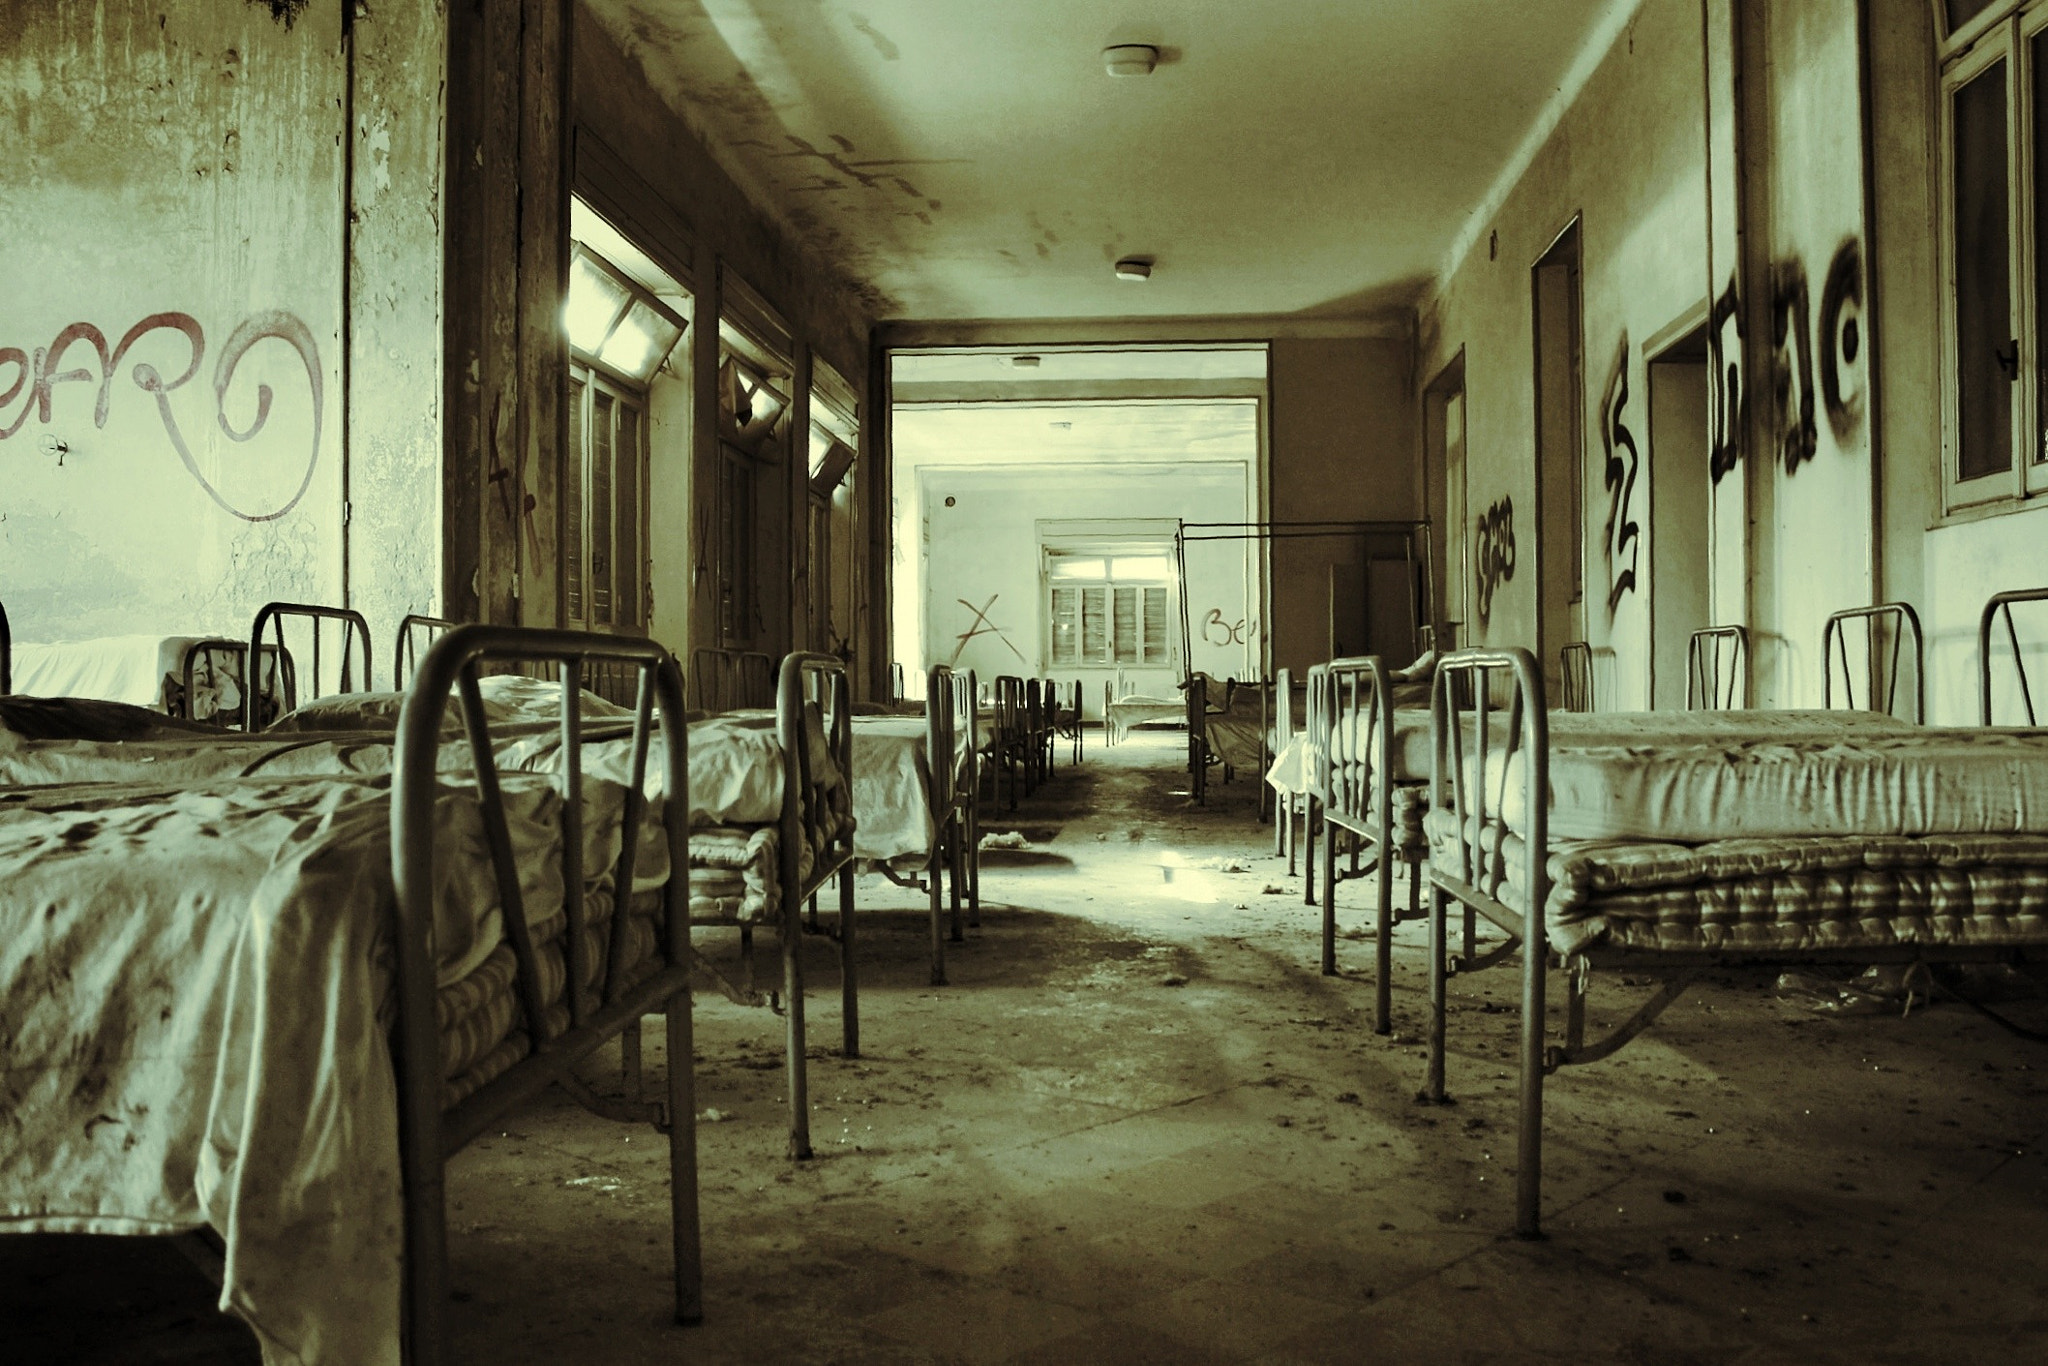 Photograph The Dormitory by Sara S. on 500px